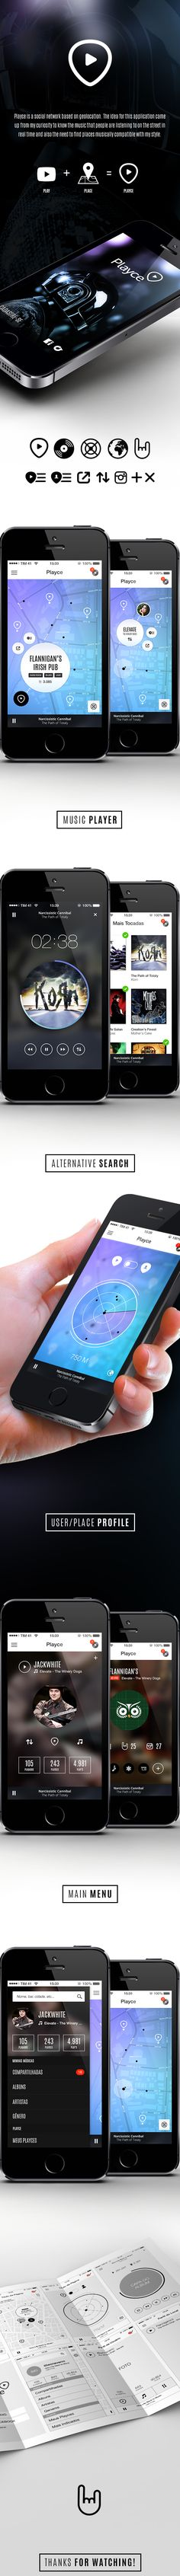 Playce - App Design by Leonardo Navarro, via Behance... The hing that i most like is the player of this app.